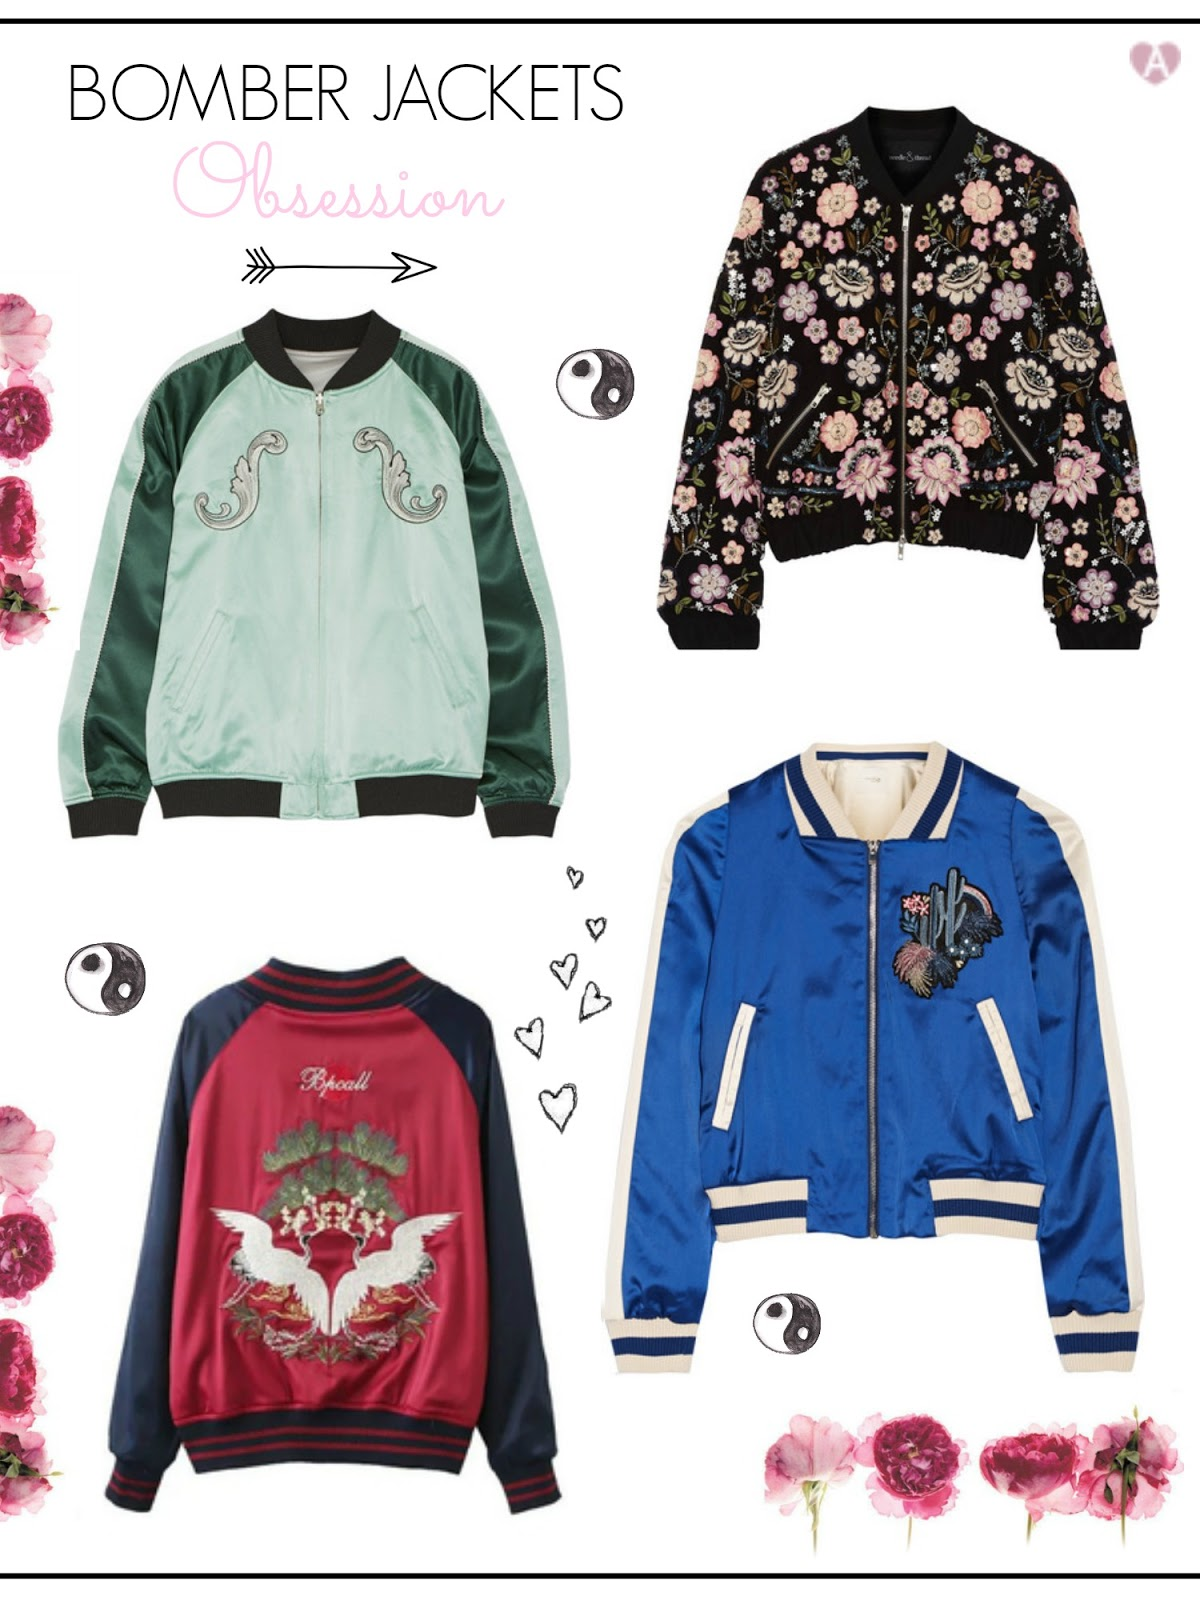 The best embroidery bomber jackets